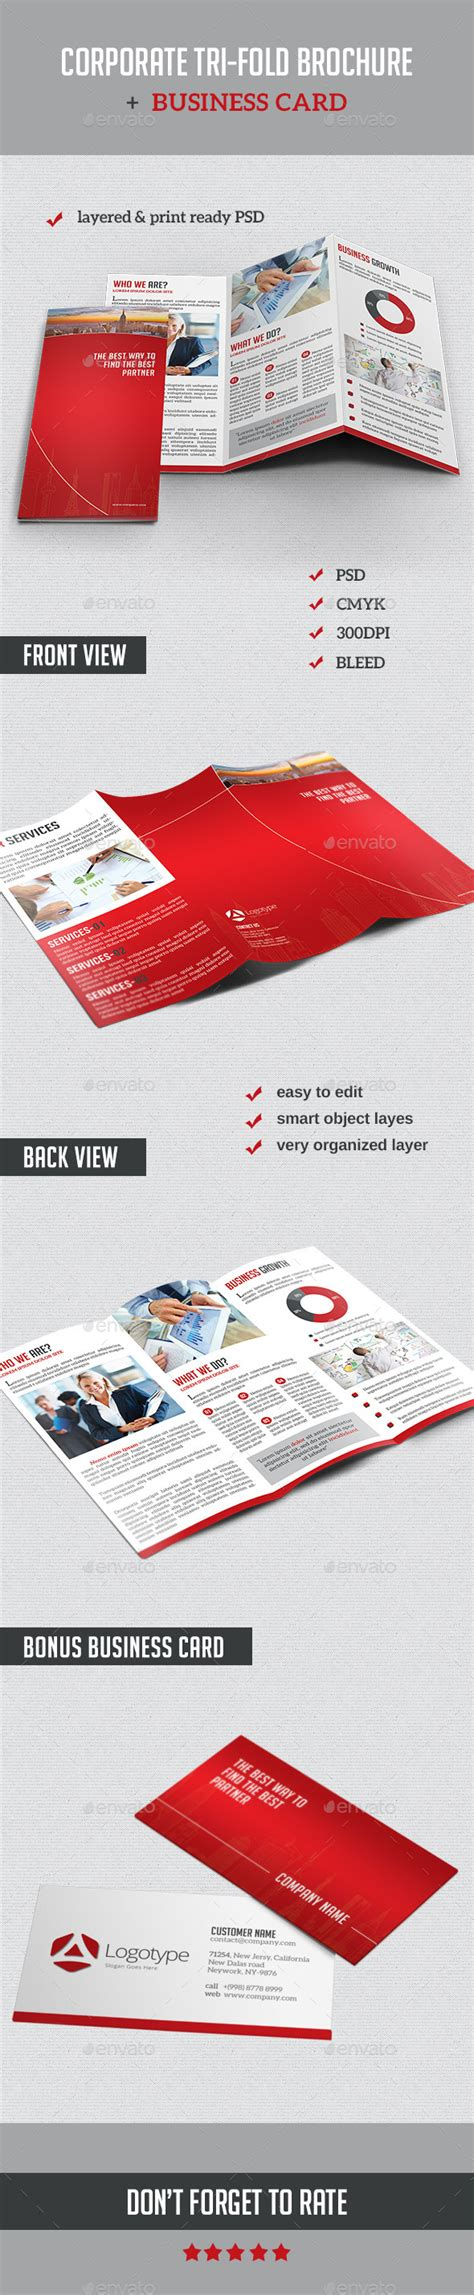 brochure templates to match vistaprint business cards corporate tri fold brochure business card corporate